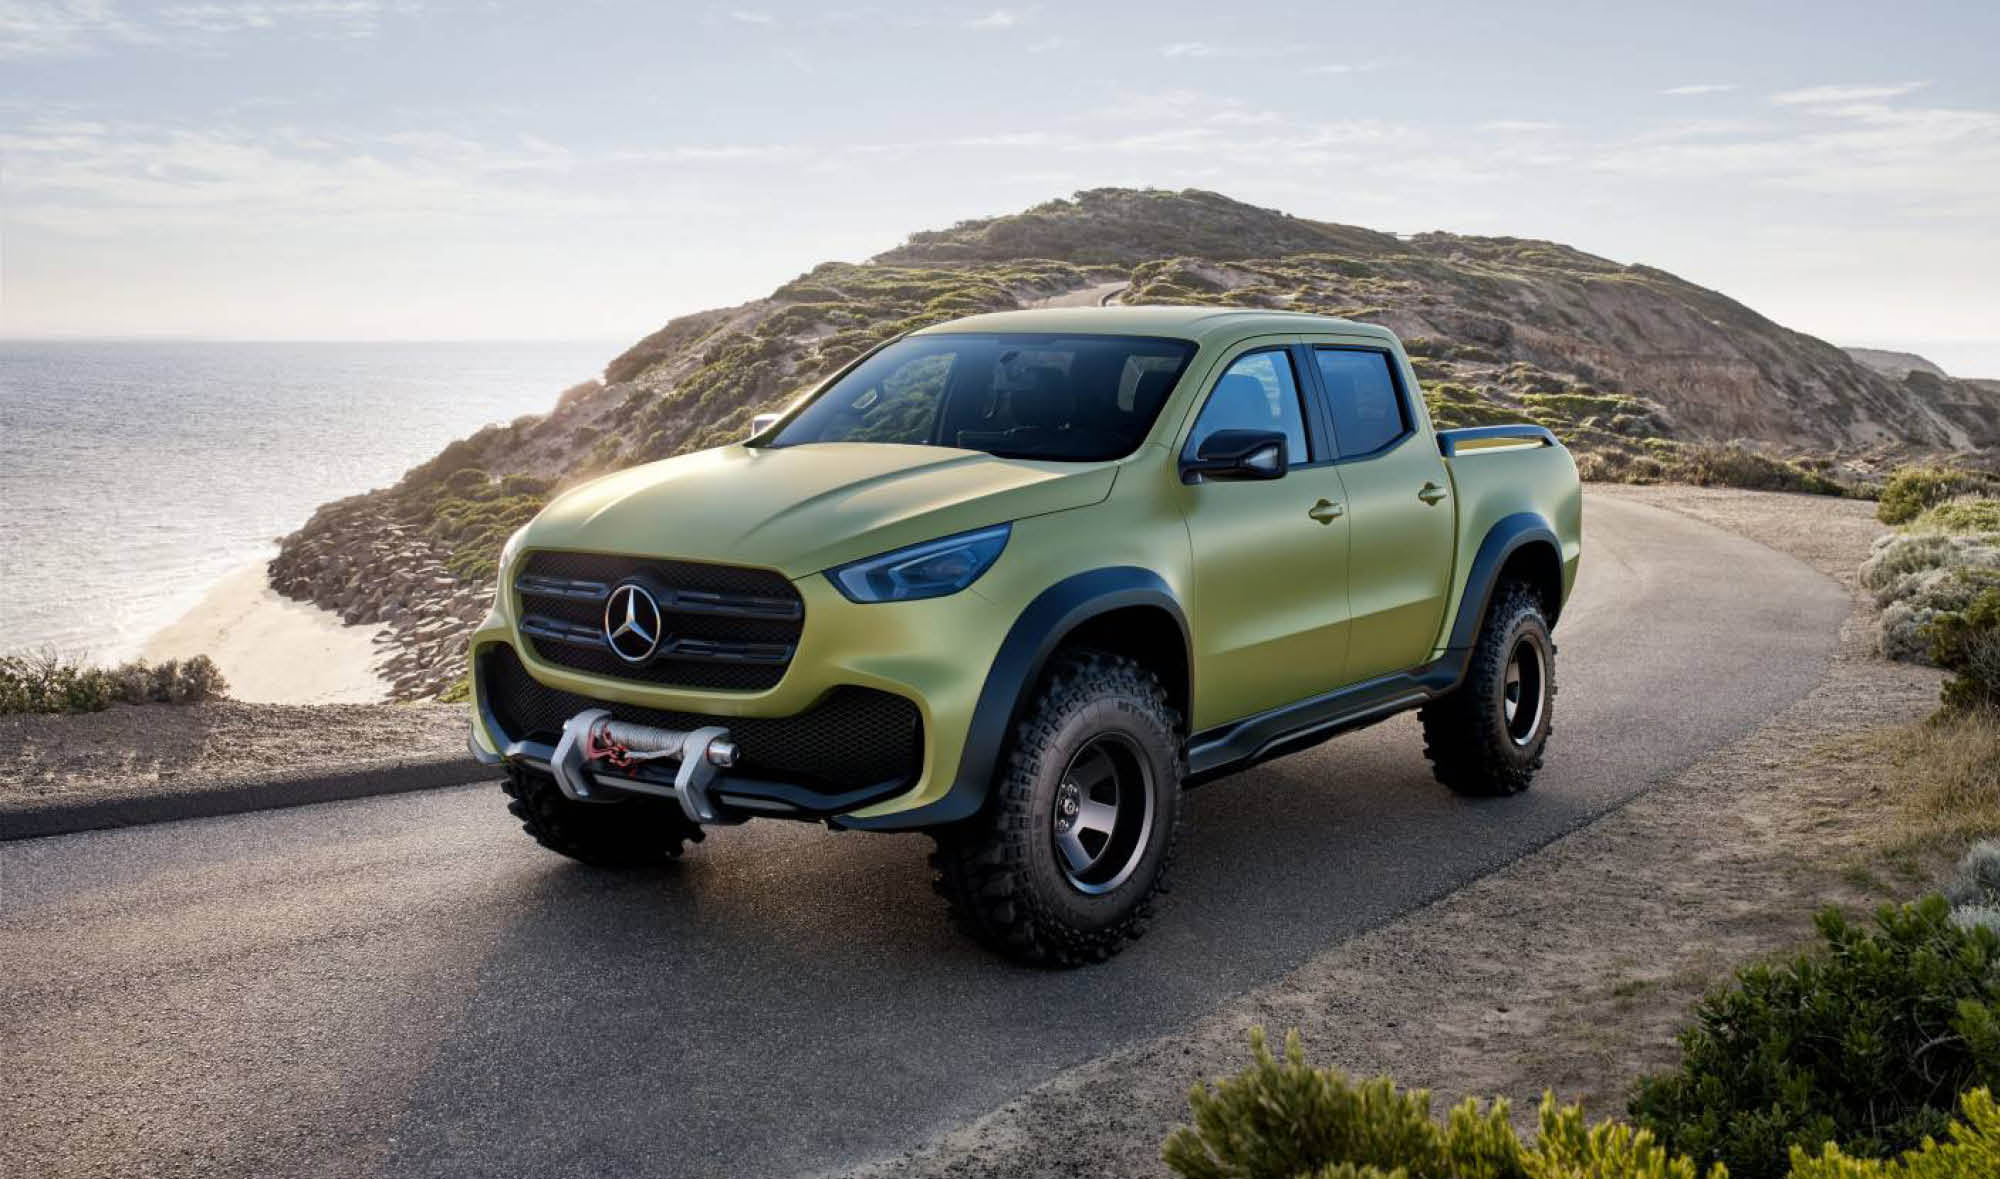 2018 MERCEDES X-CLASS MIGHT OUTPOWER AMAROK V6 - RV DAILY